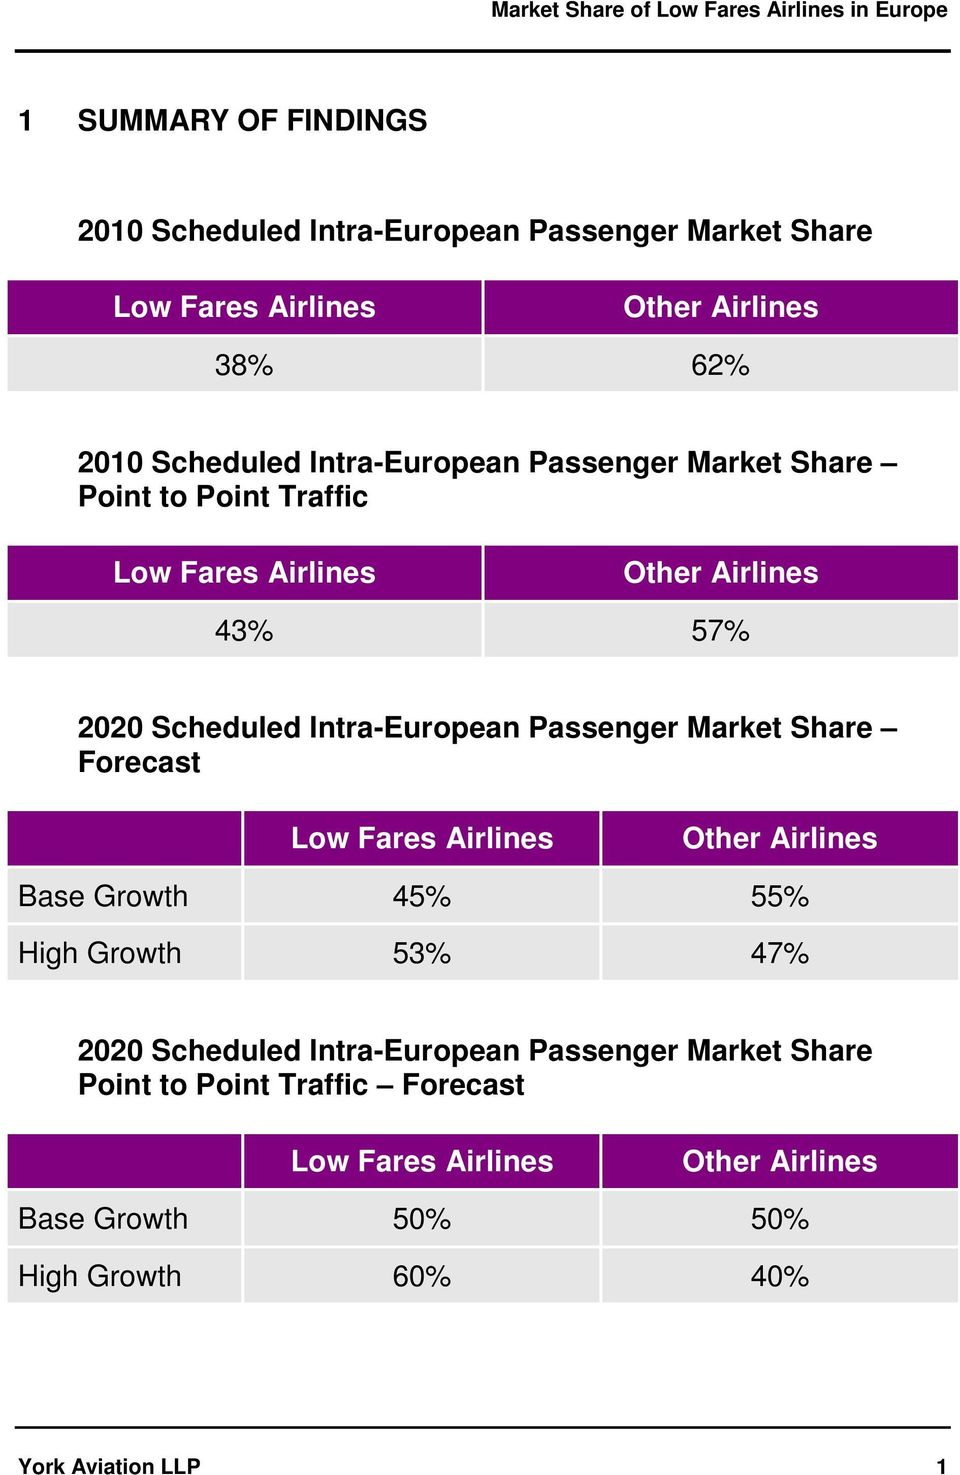 Passenger Market Share Forecast Low Fares Airlines Other Airlines Base Growth 45% 55% High Growth 53% 47% 2020 Scheduled Intra-European